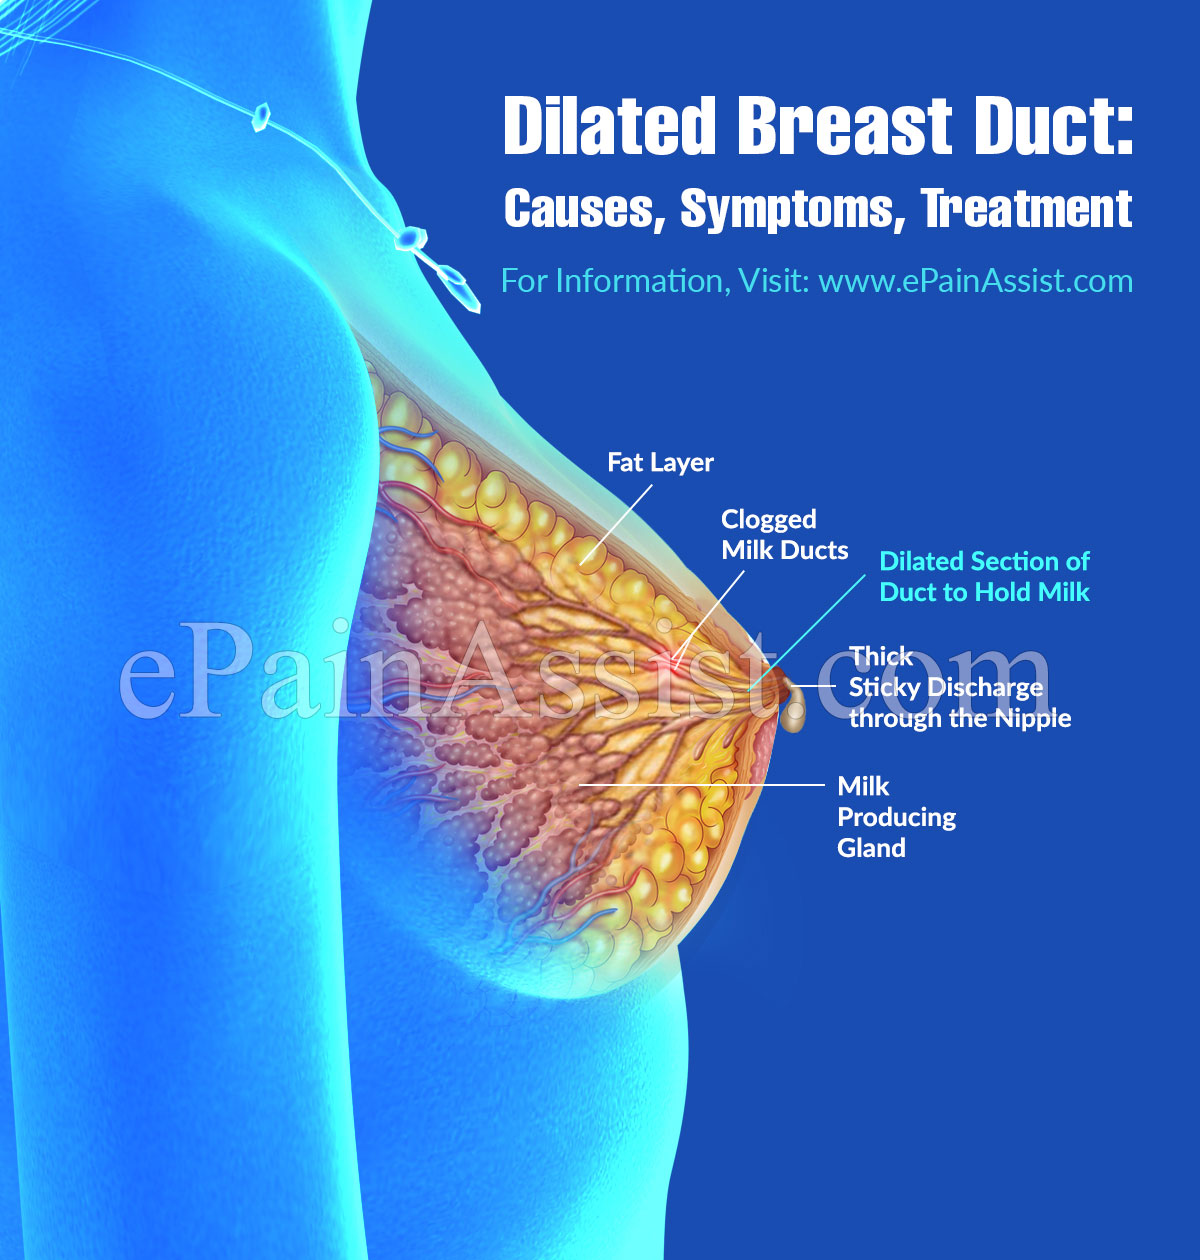 Dilated Breast Duct: It's Causes, Symptoms, Treatment